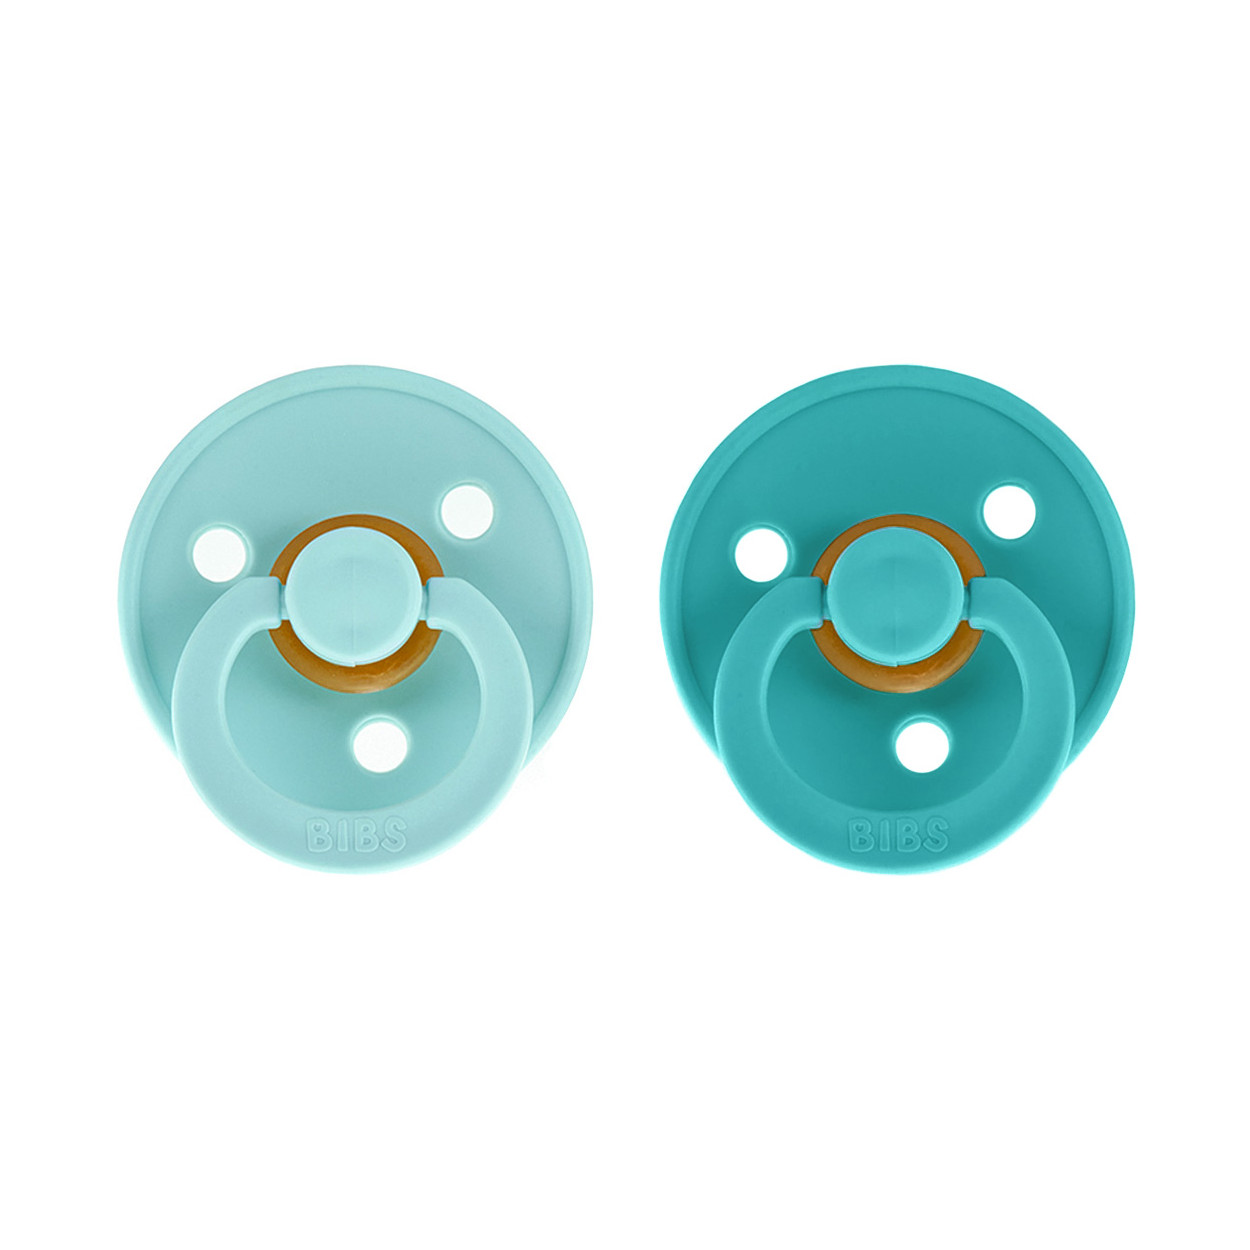 2 Chupetes BIBS Colours Baby Mint/Turquoise